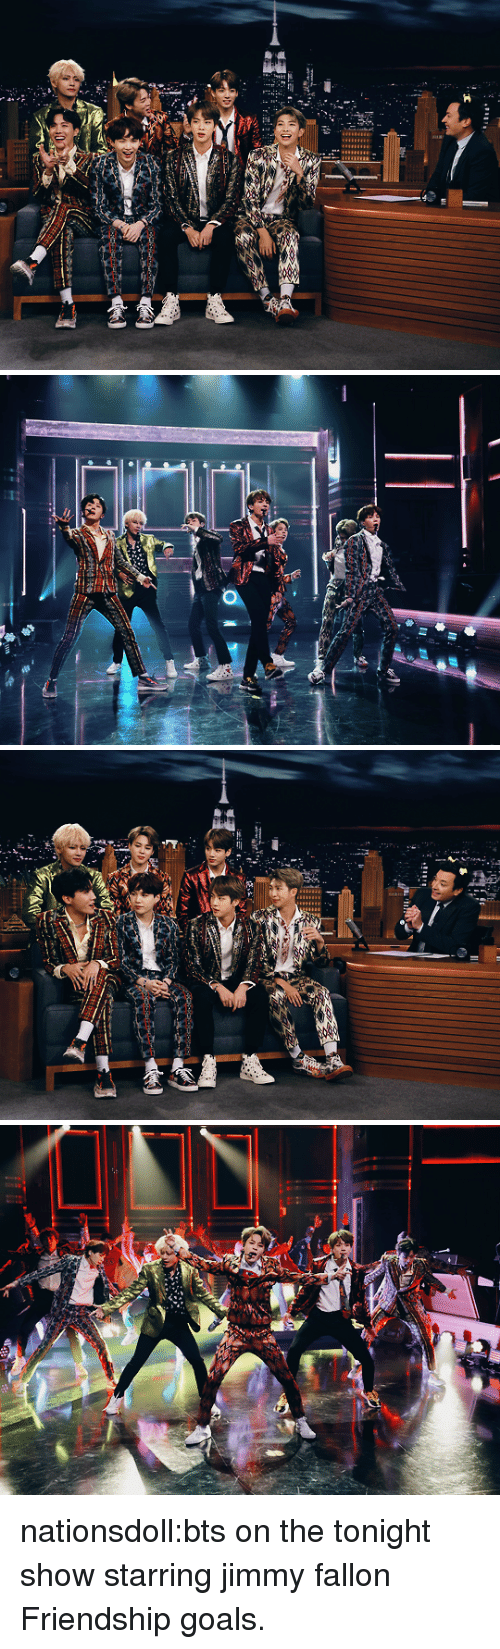 Goals, Jimmy Fallon, and Target: nationsdoll:bts on the tonight show starring jimmy fallon Friendship goals.